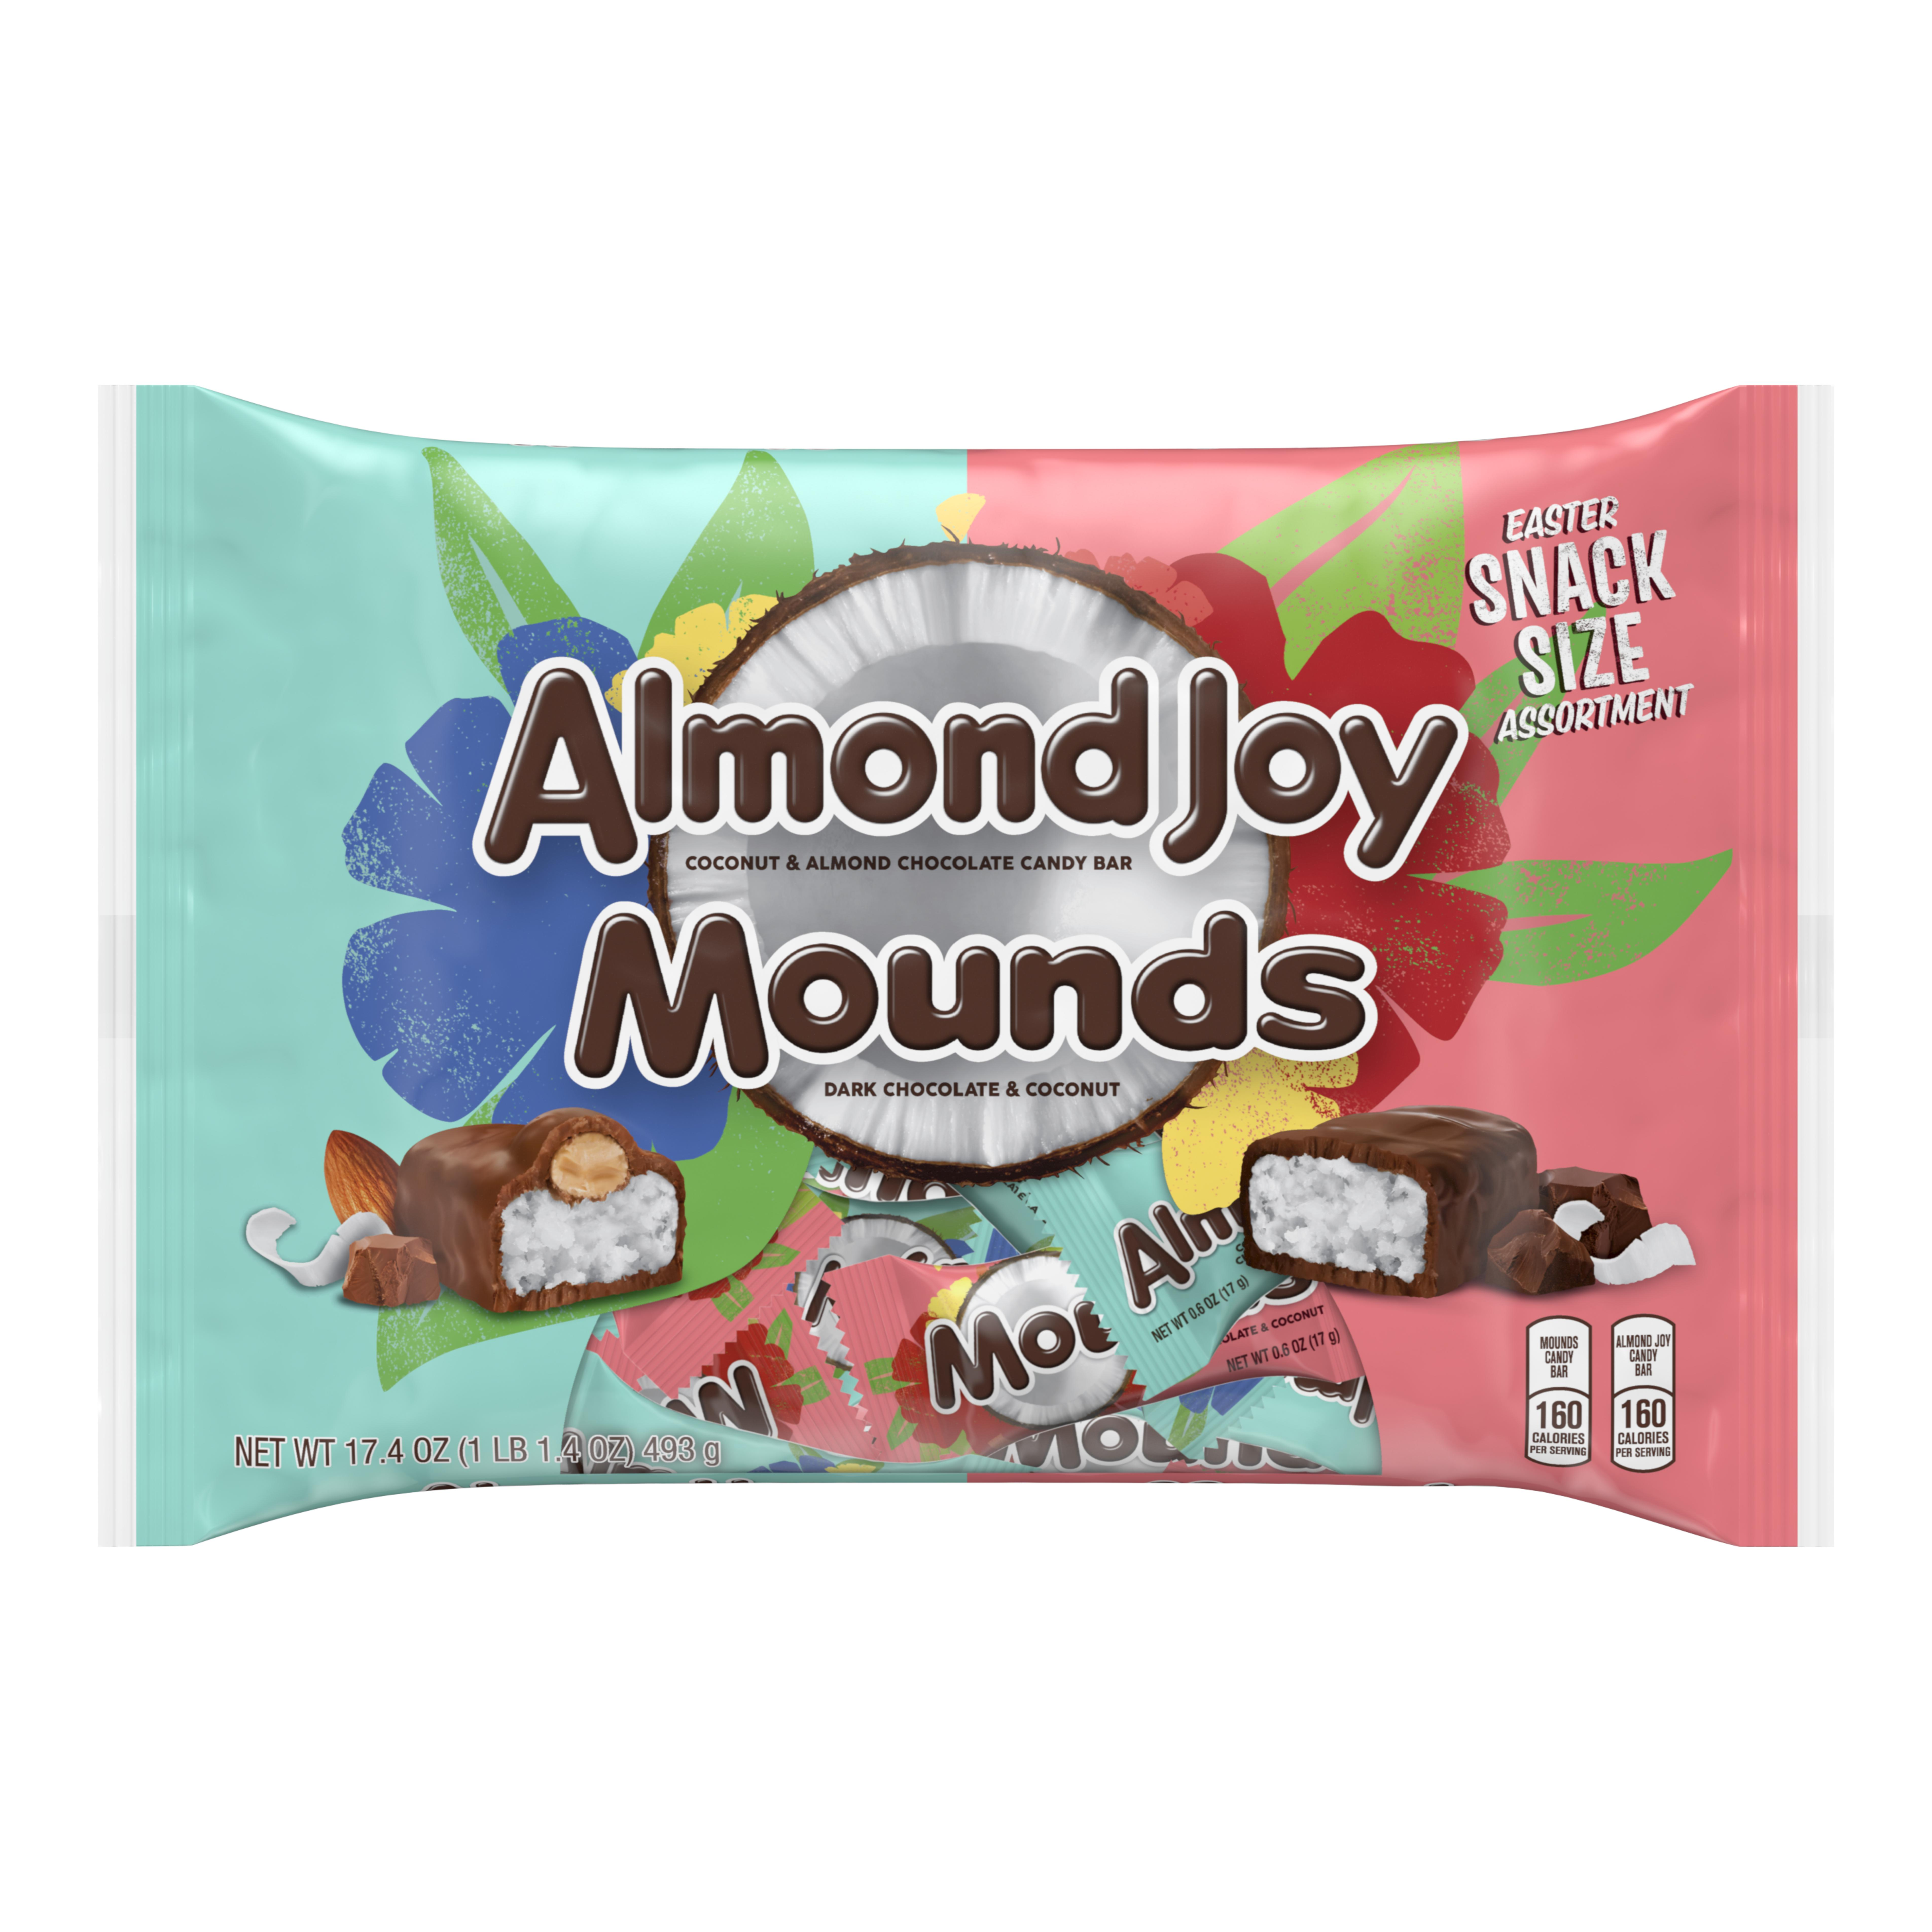 Almond Joy, Mounds, Coconut and Chocolate Snack Size Easter Candy Assortment, 17.4 Oz